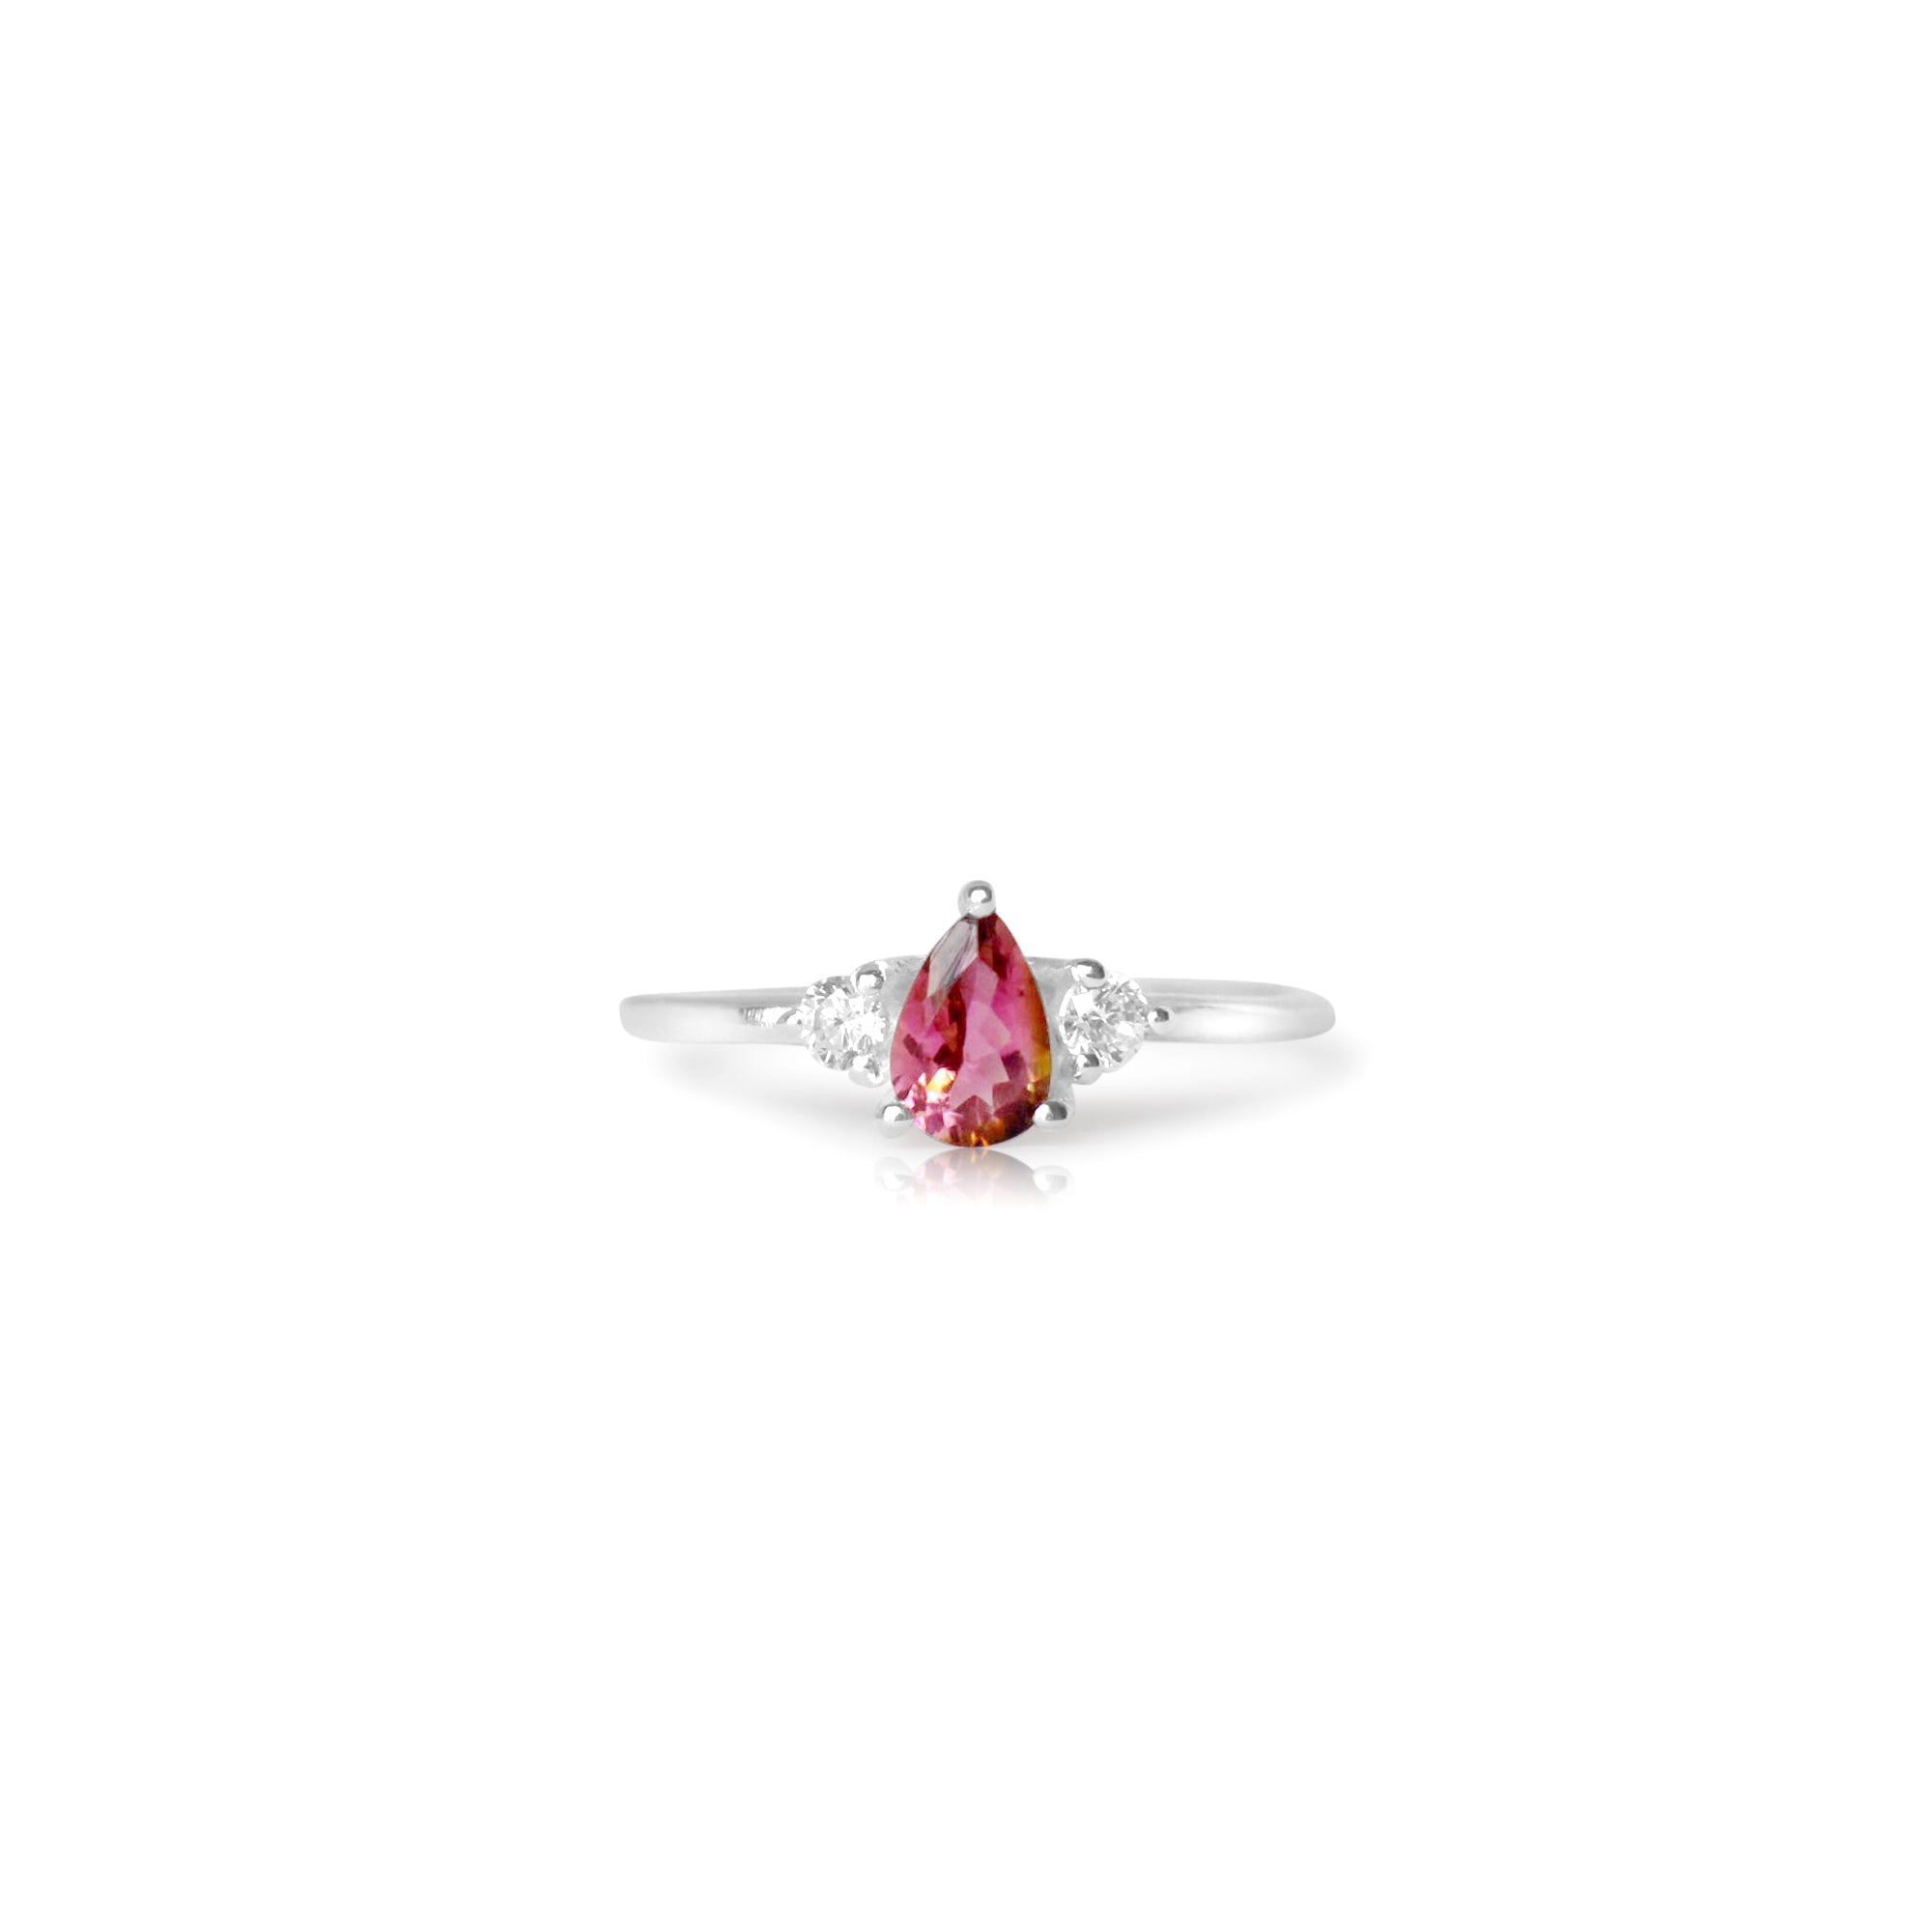 925 Silver Luxe Series Ring - Yumi (Pink Tourmaline) - Tessellate.Co